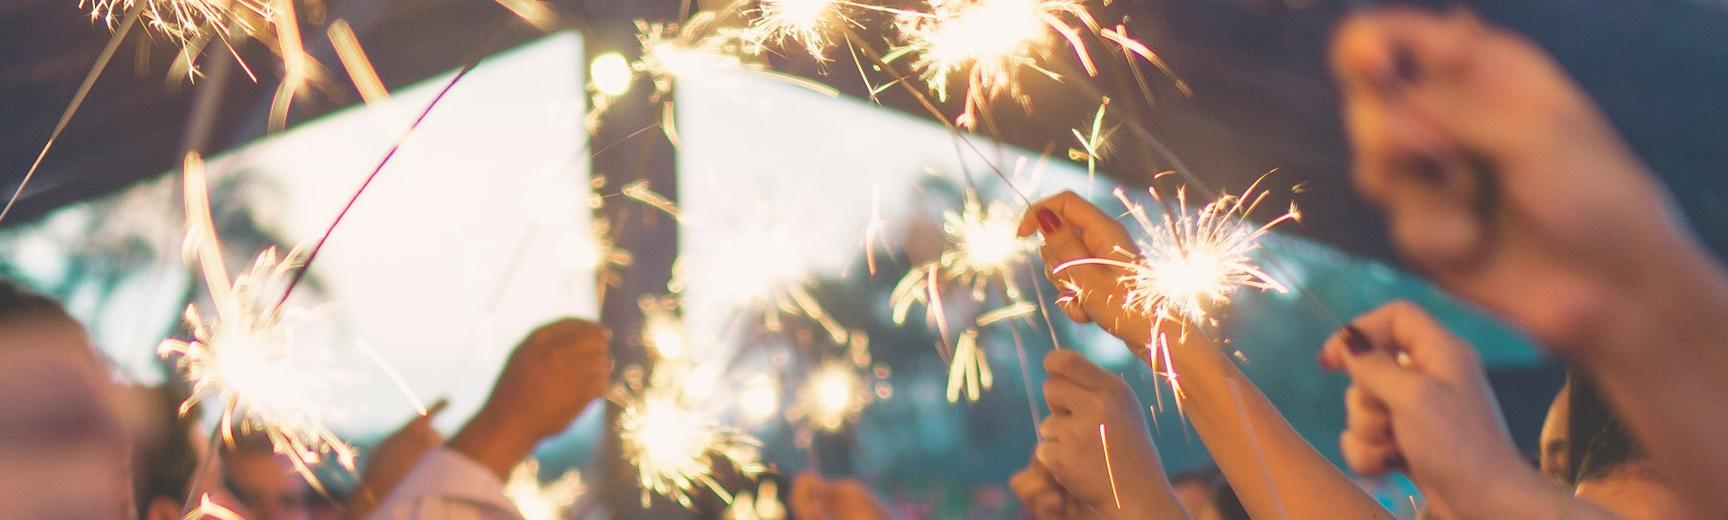 Sparklers in the air